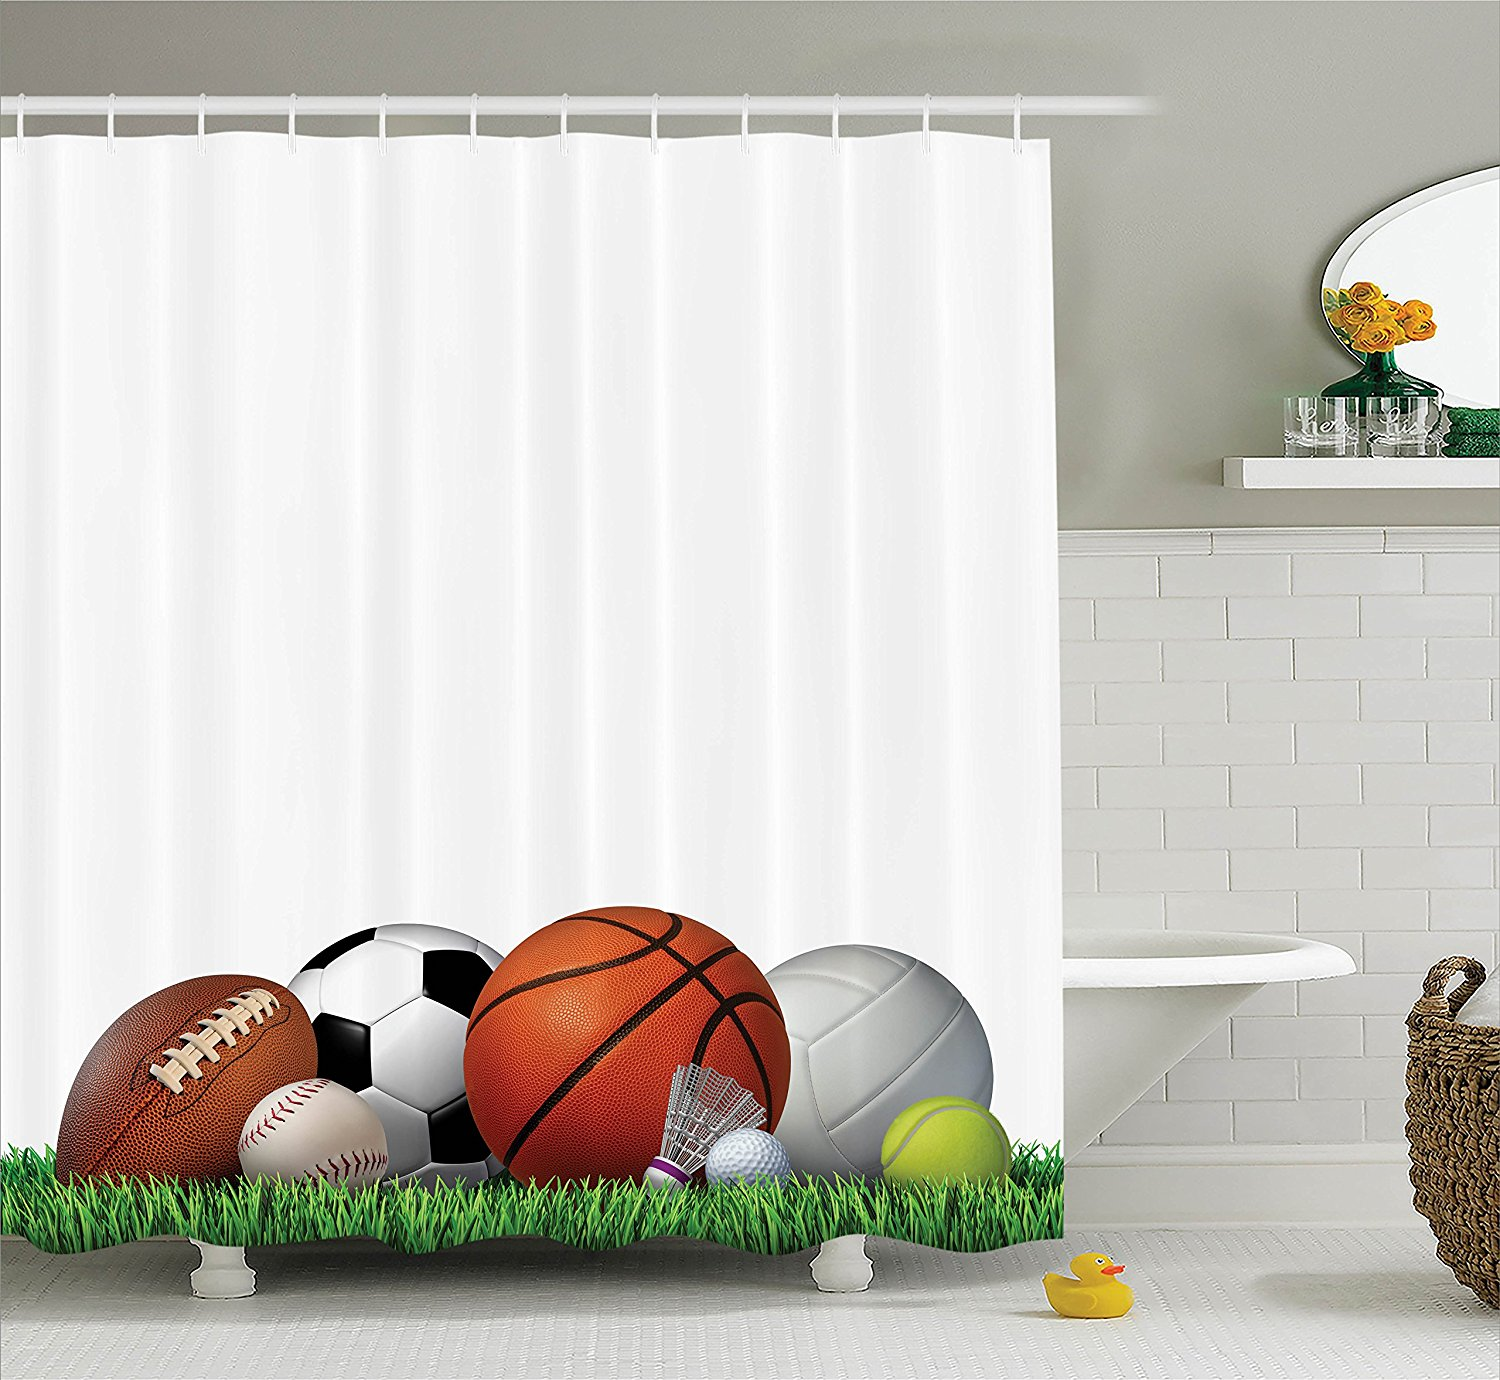 Sports Decor Collection Sports Equipment on Grass Summertime Outdoor Activities Fitness Exercise Design Shower Curtain